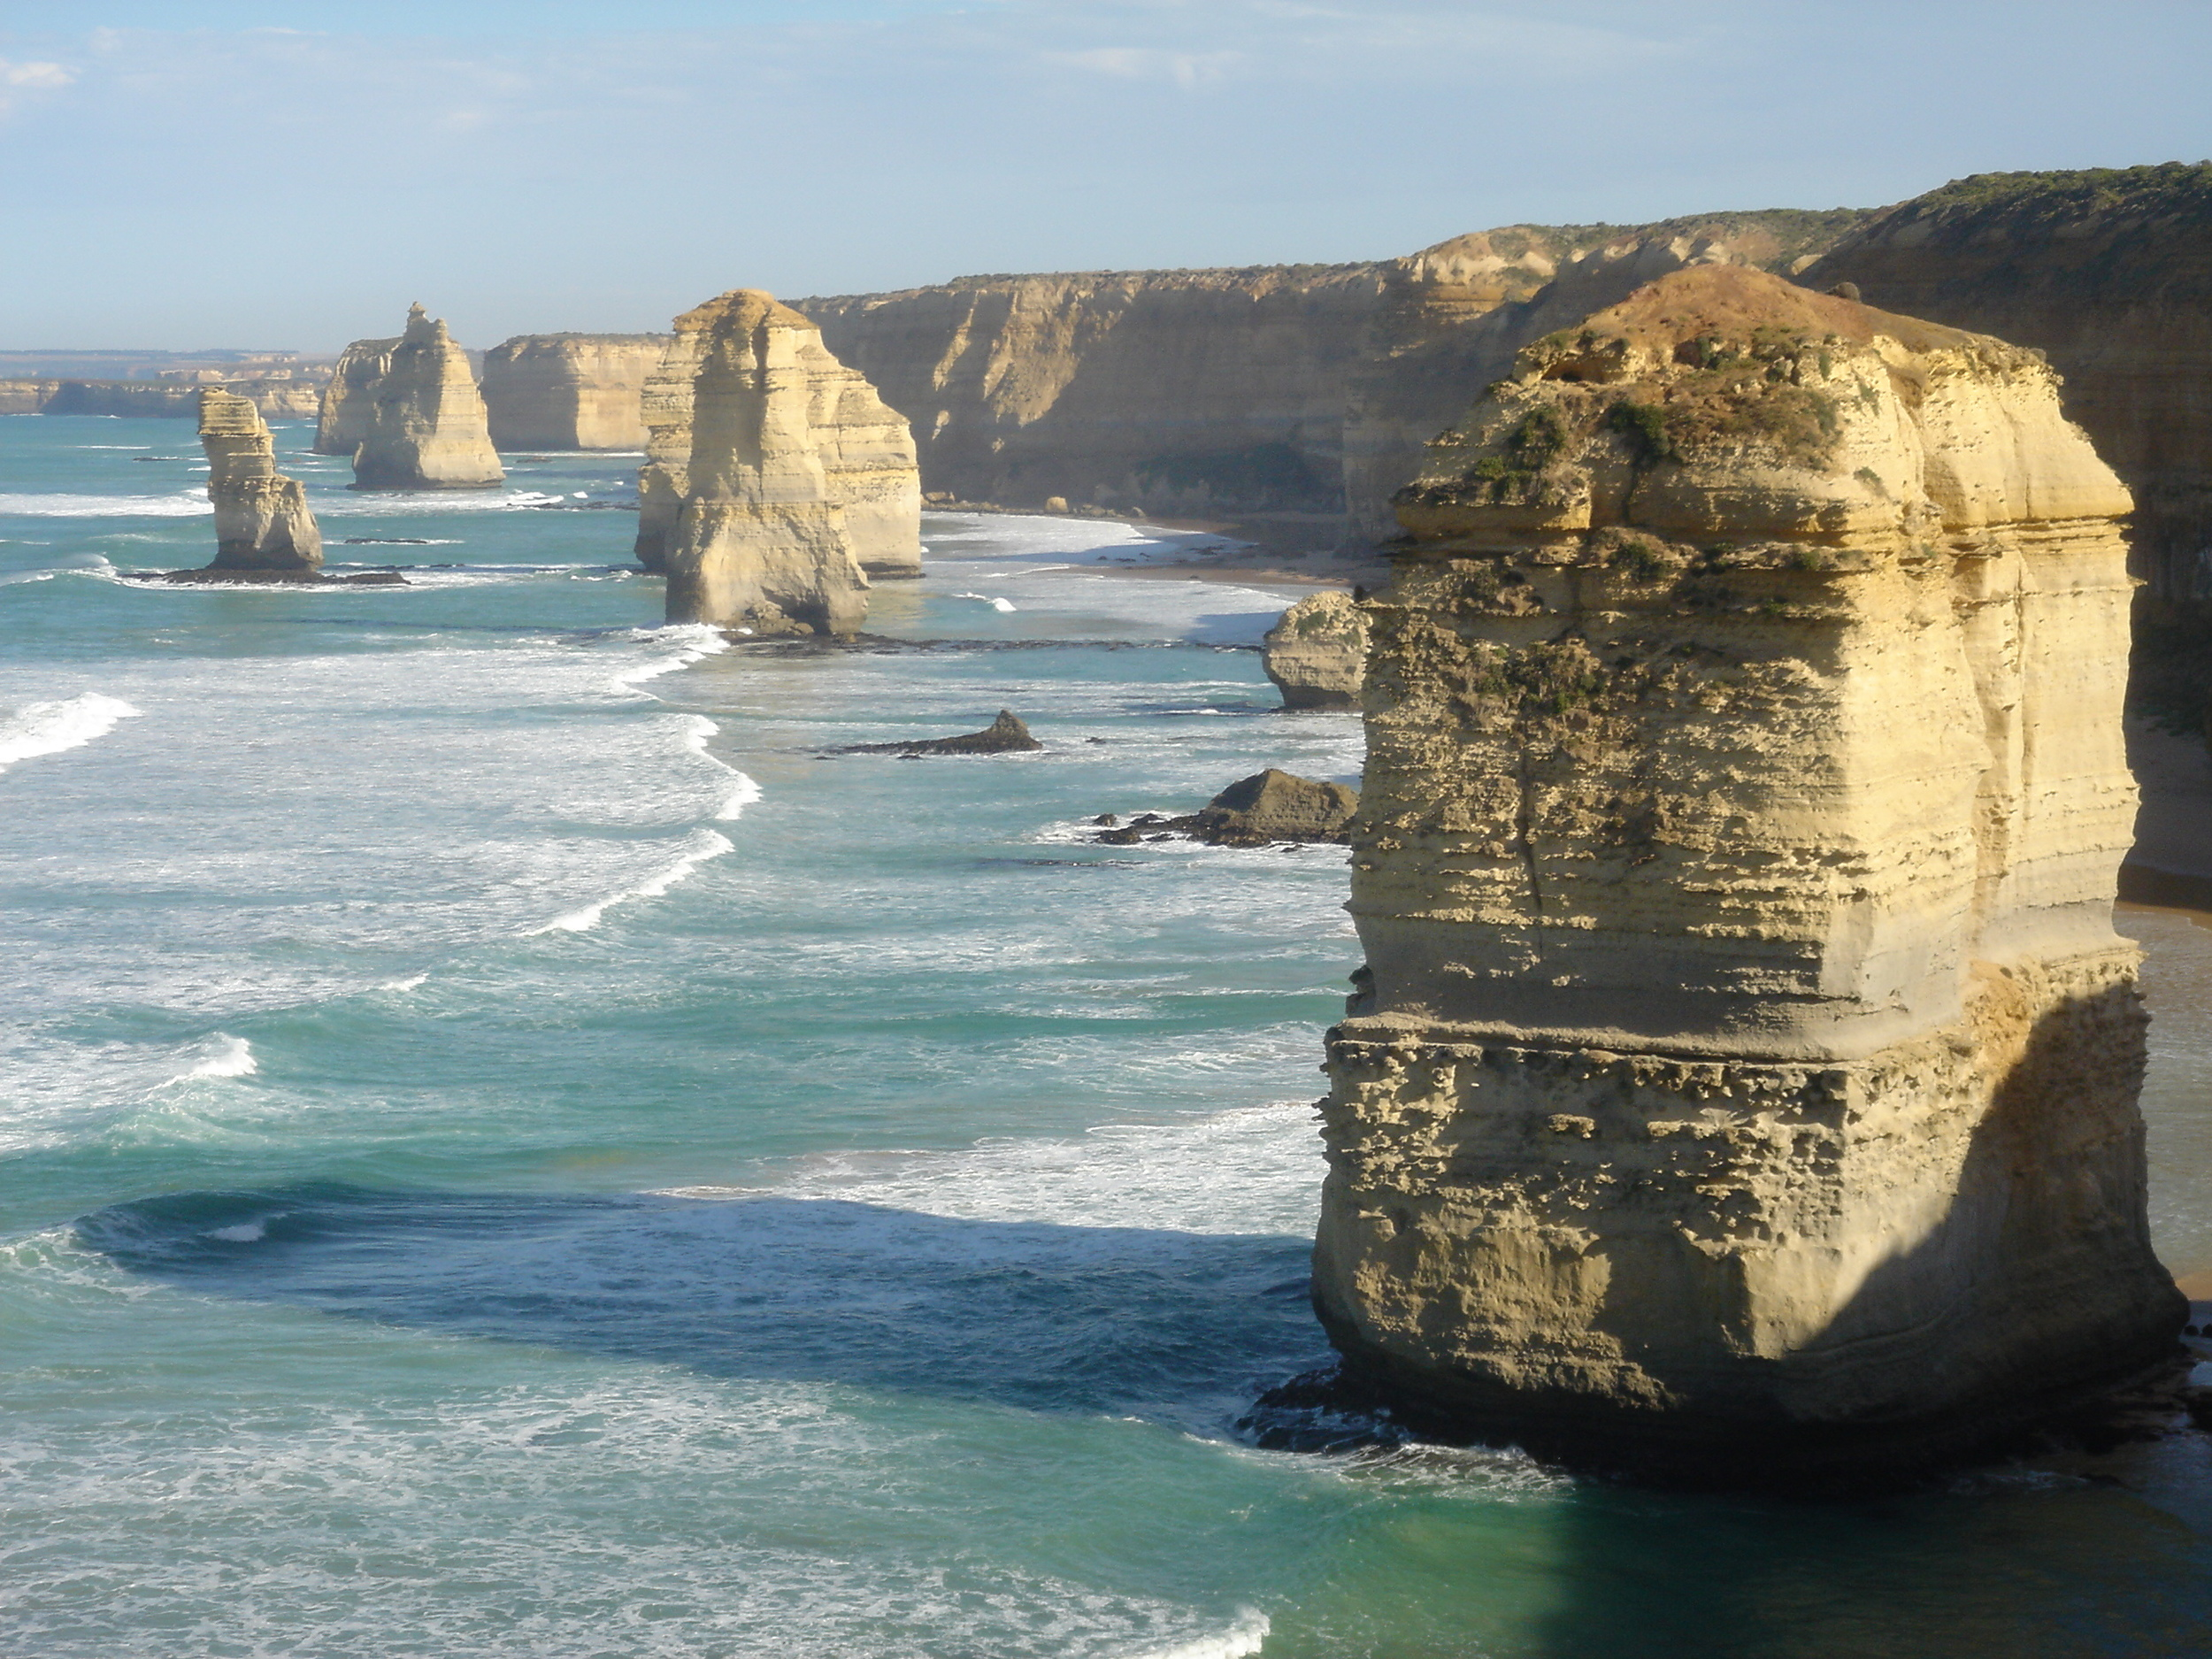 The Twelve Apostles, giant sea stacks, mark the western end of the Great Ocean Walk.